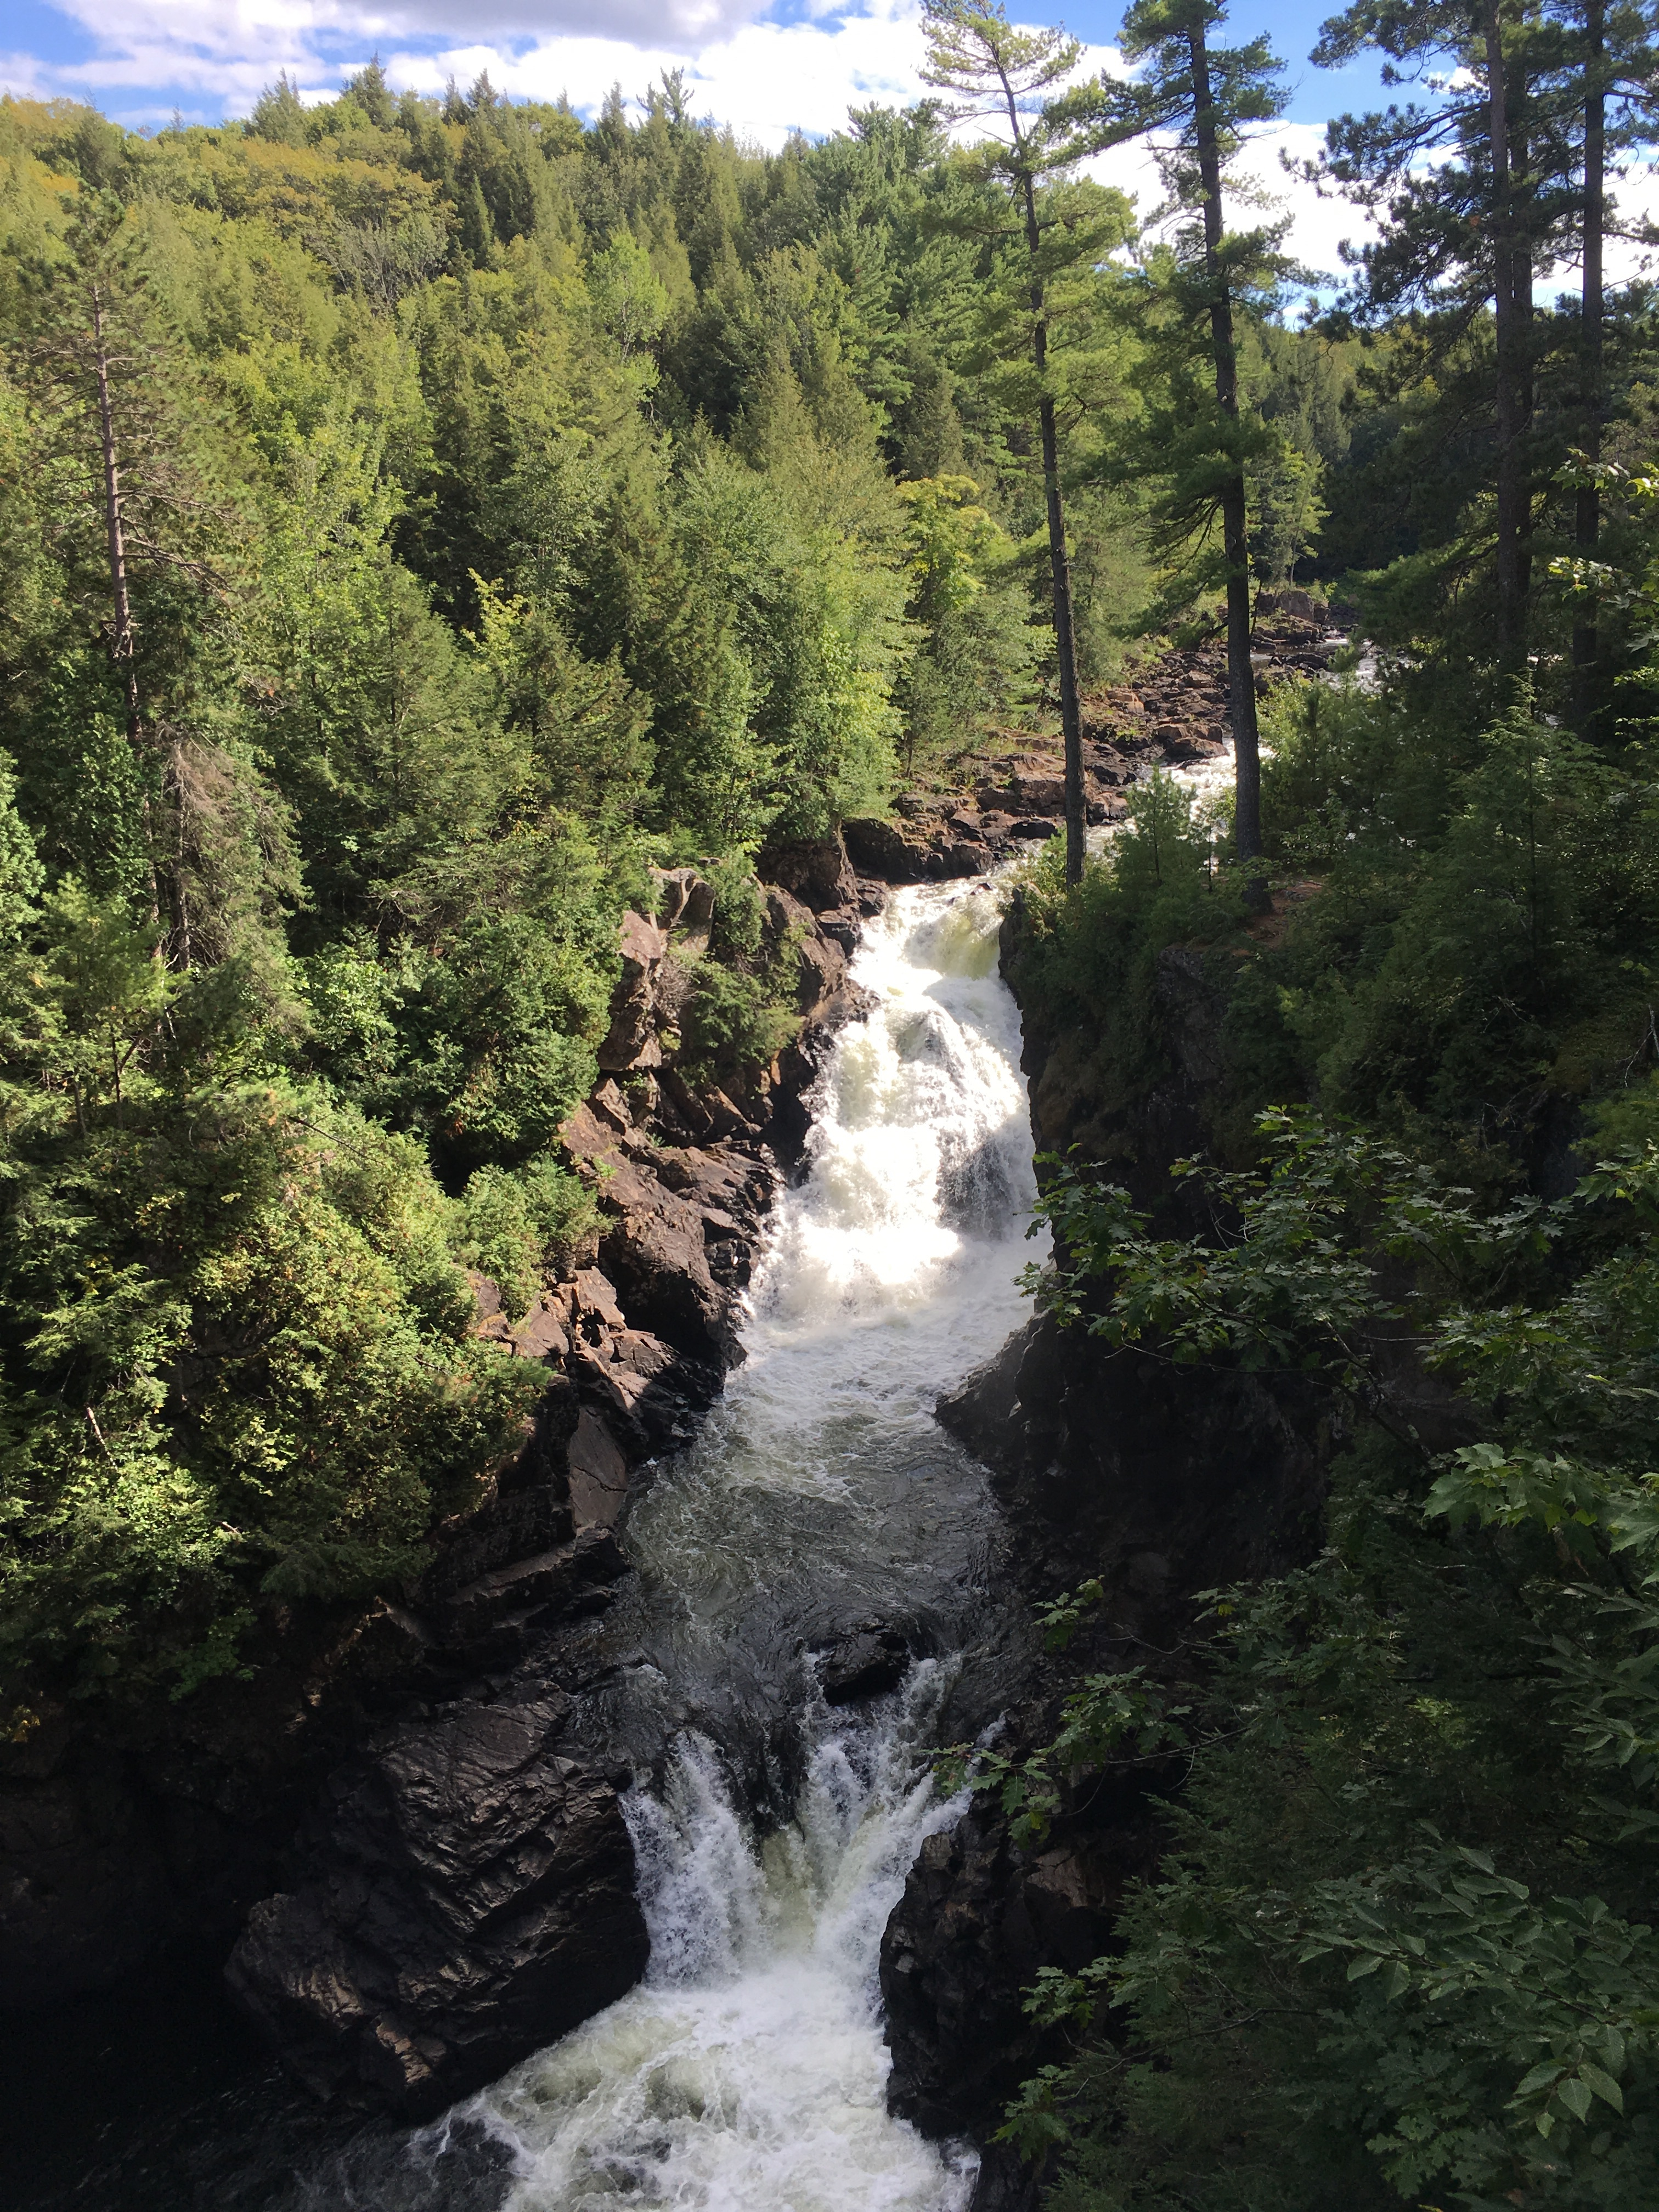 Rawdon Falls (even more!)